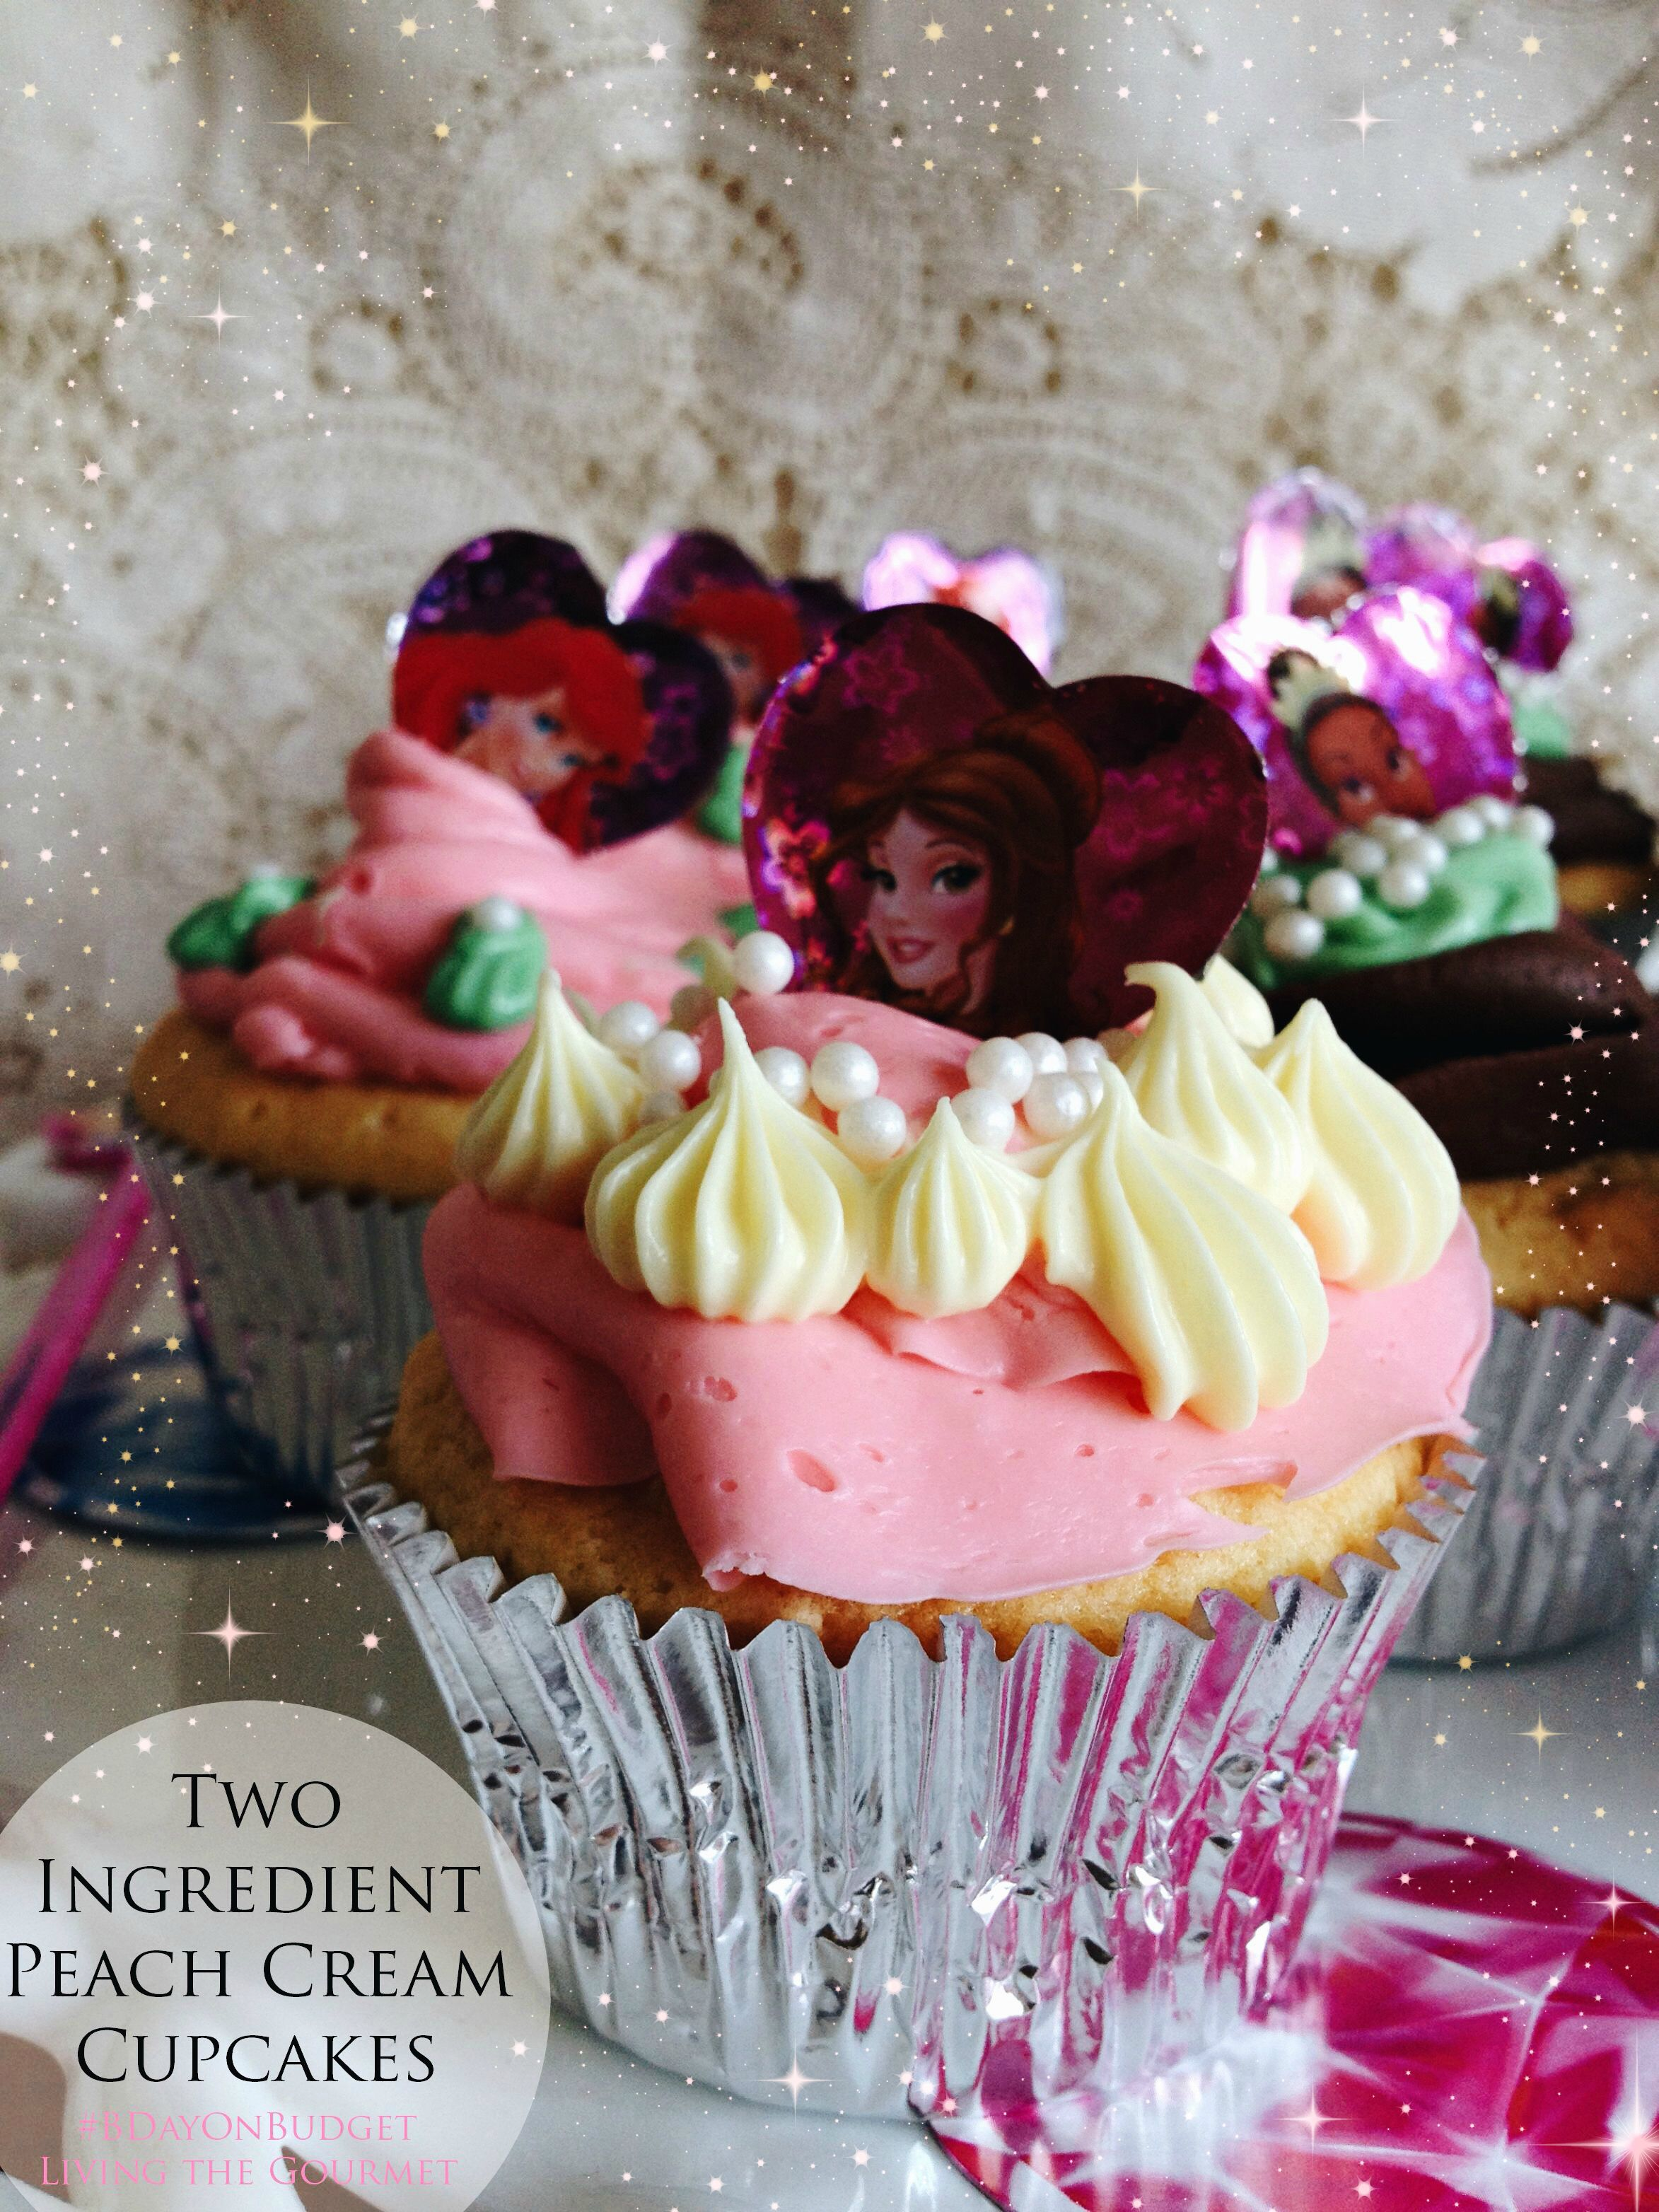 Living the Gourmet: Two Ingredient Party Cupcakes | #BDayOnBudget #Ad